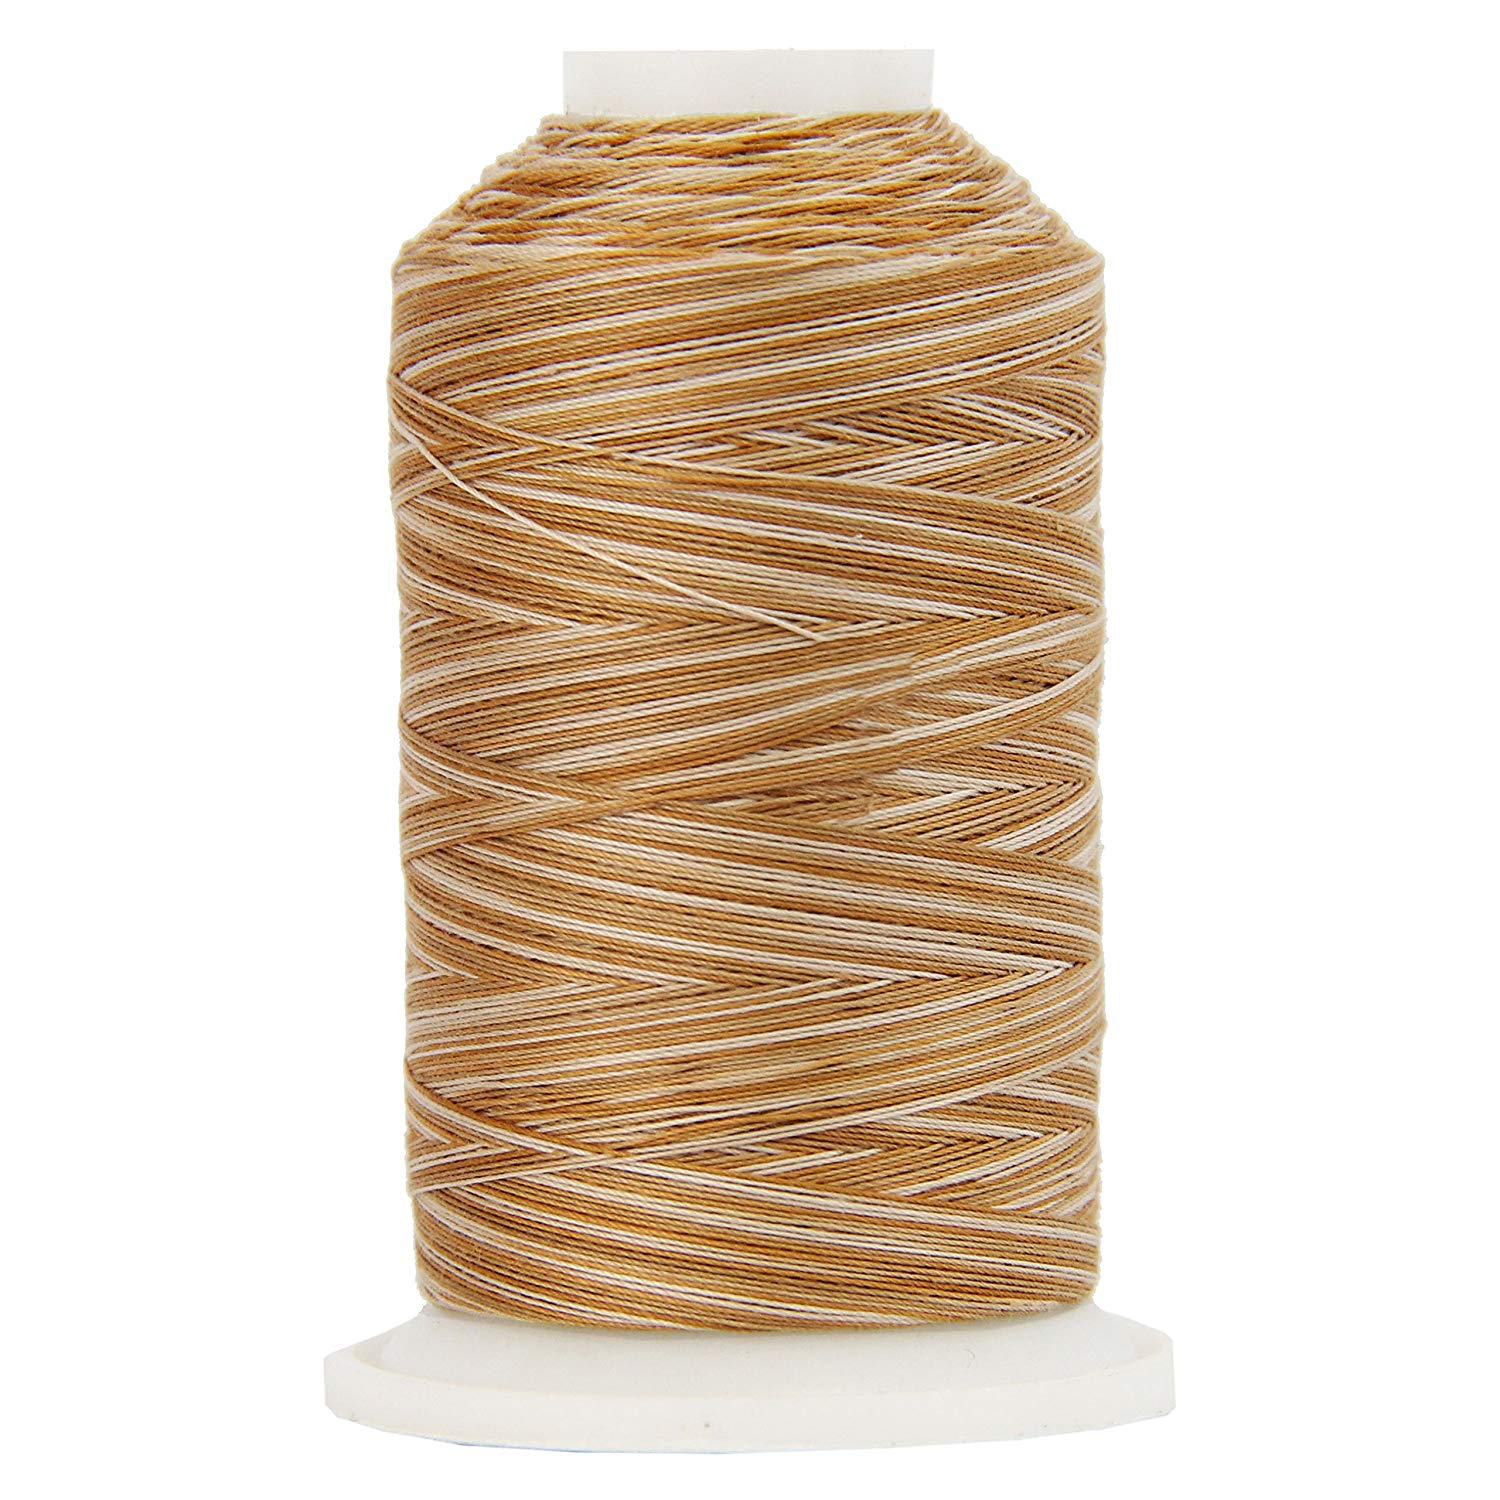 Threadart Variegated Cotton Thread 600M - Color 2636 - Wildflowers - 40/3wt - 22 Colors Available - 3 spool bundle packs